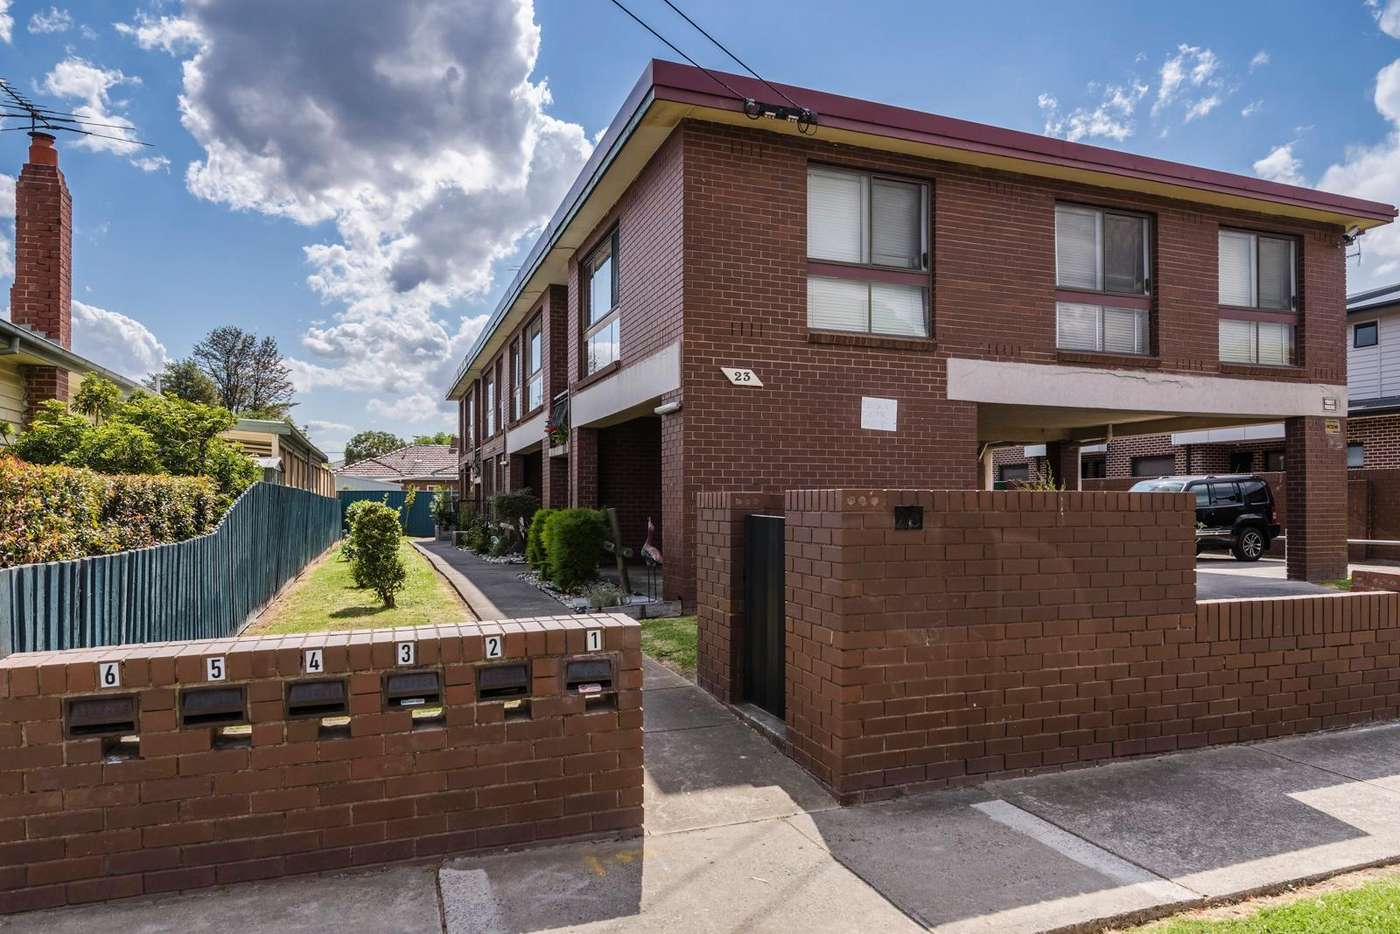 Main view of Homely apartment listing, 3/23 Bruce Street, Coburg VIC 3058